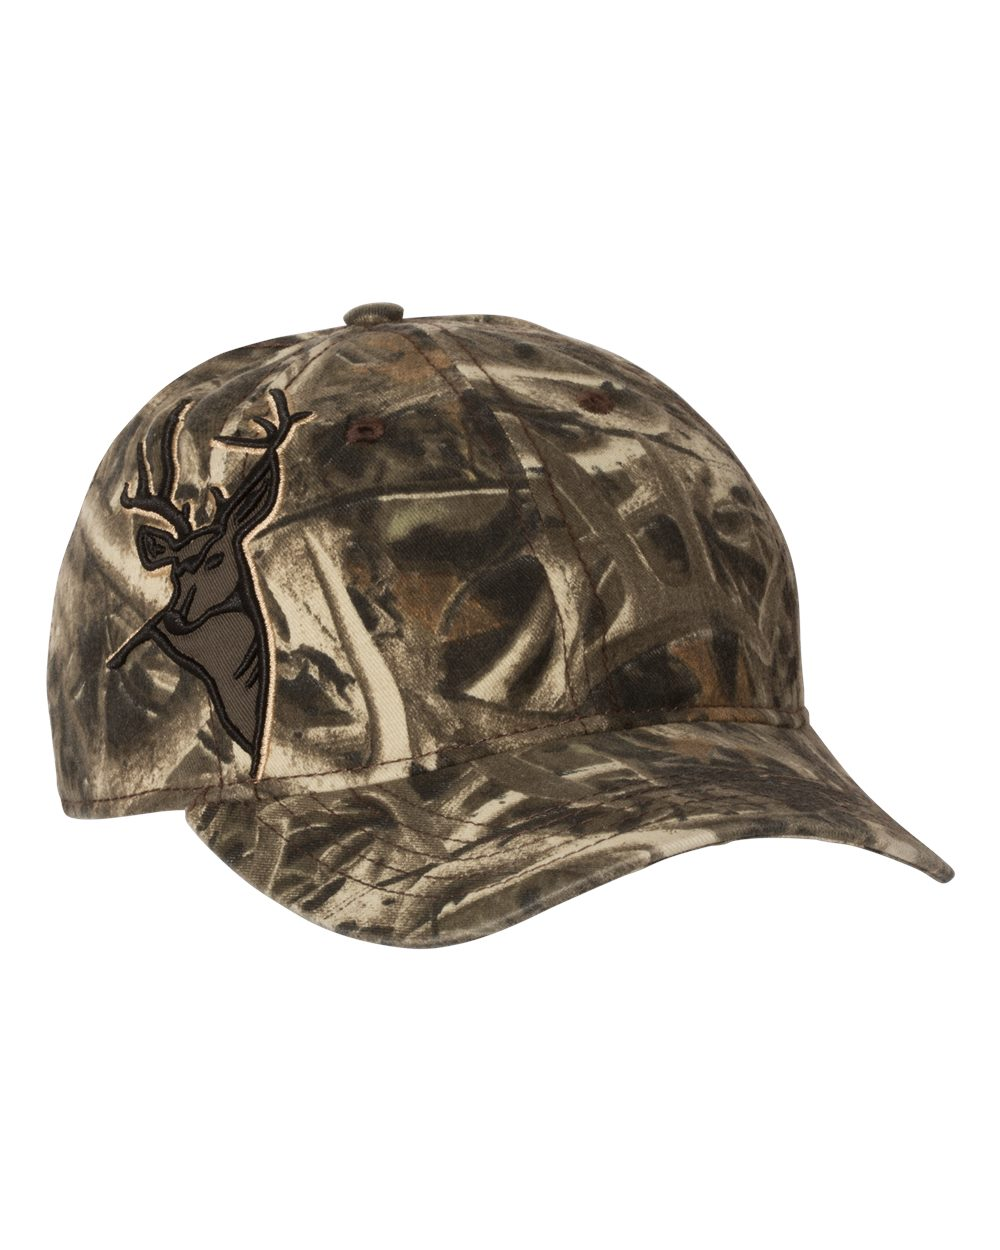 DRI DUCK 3320 - Buck Applique Cap